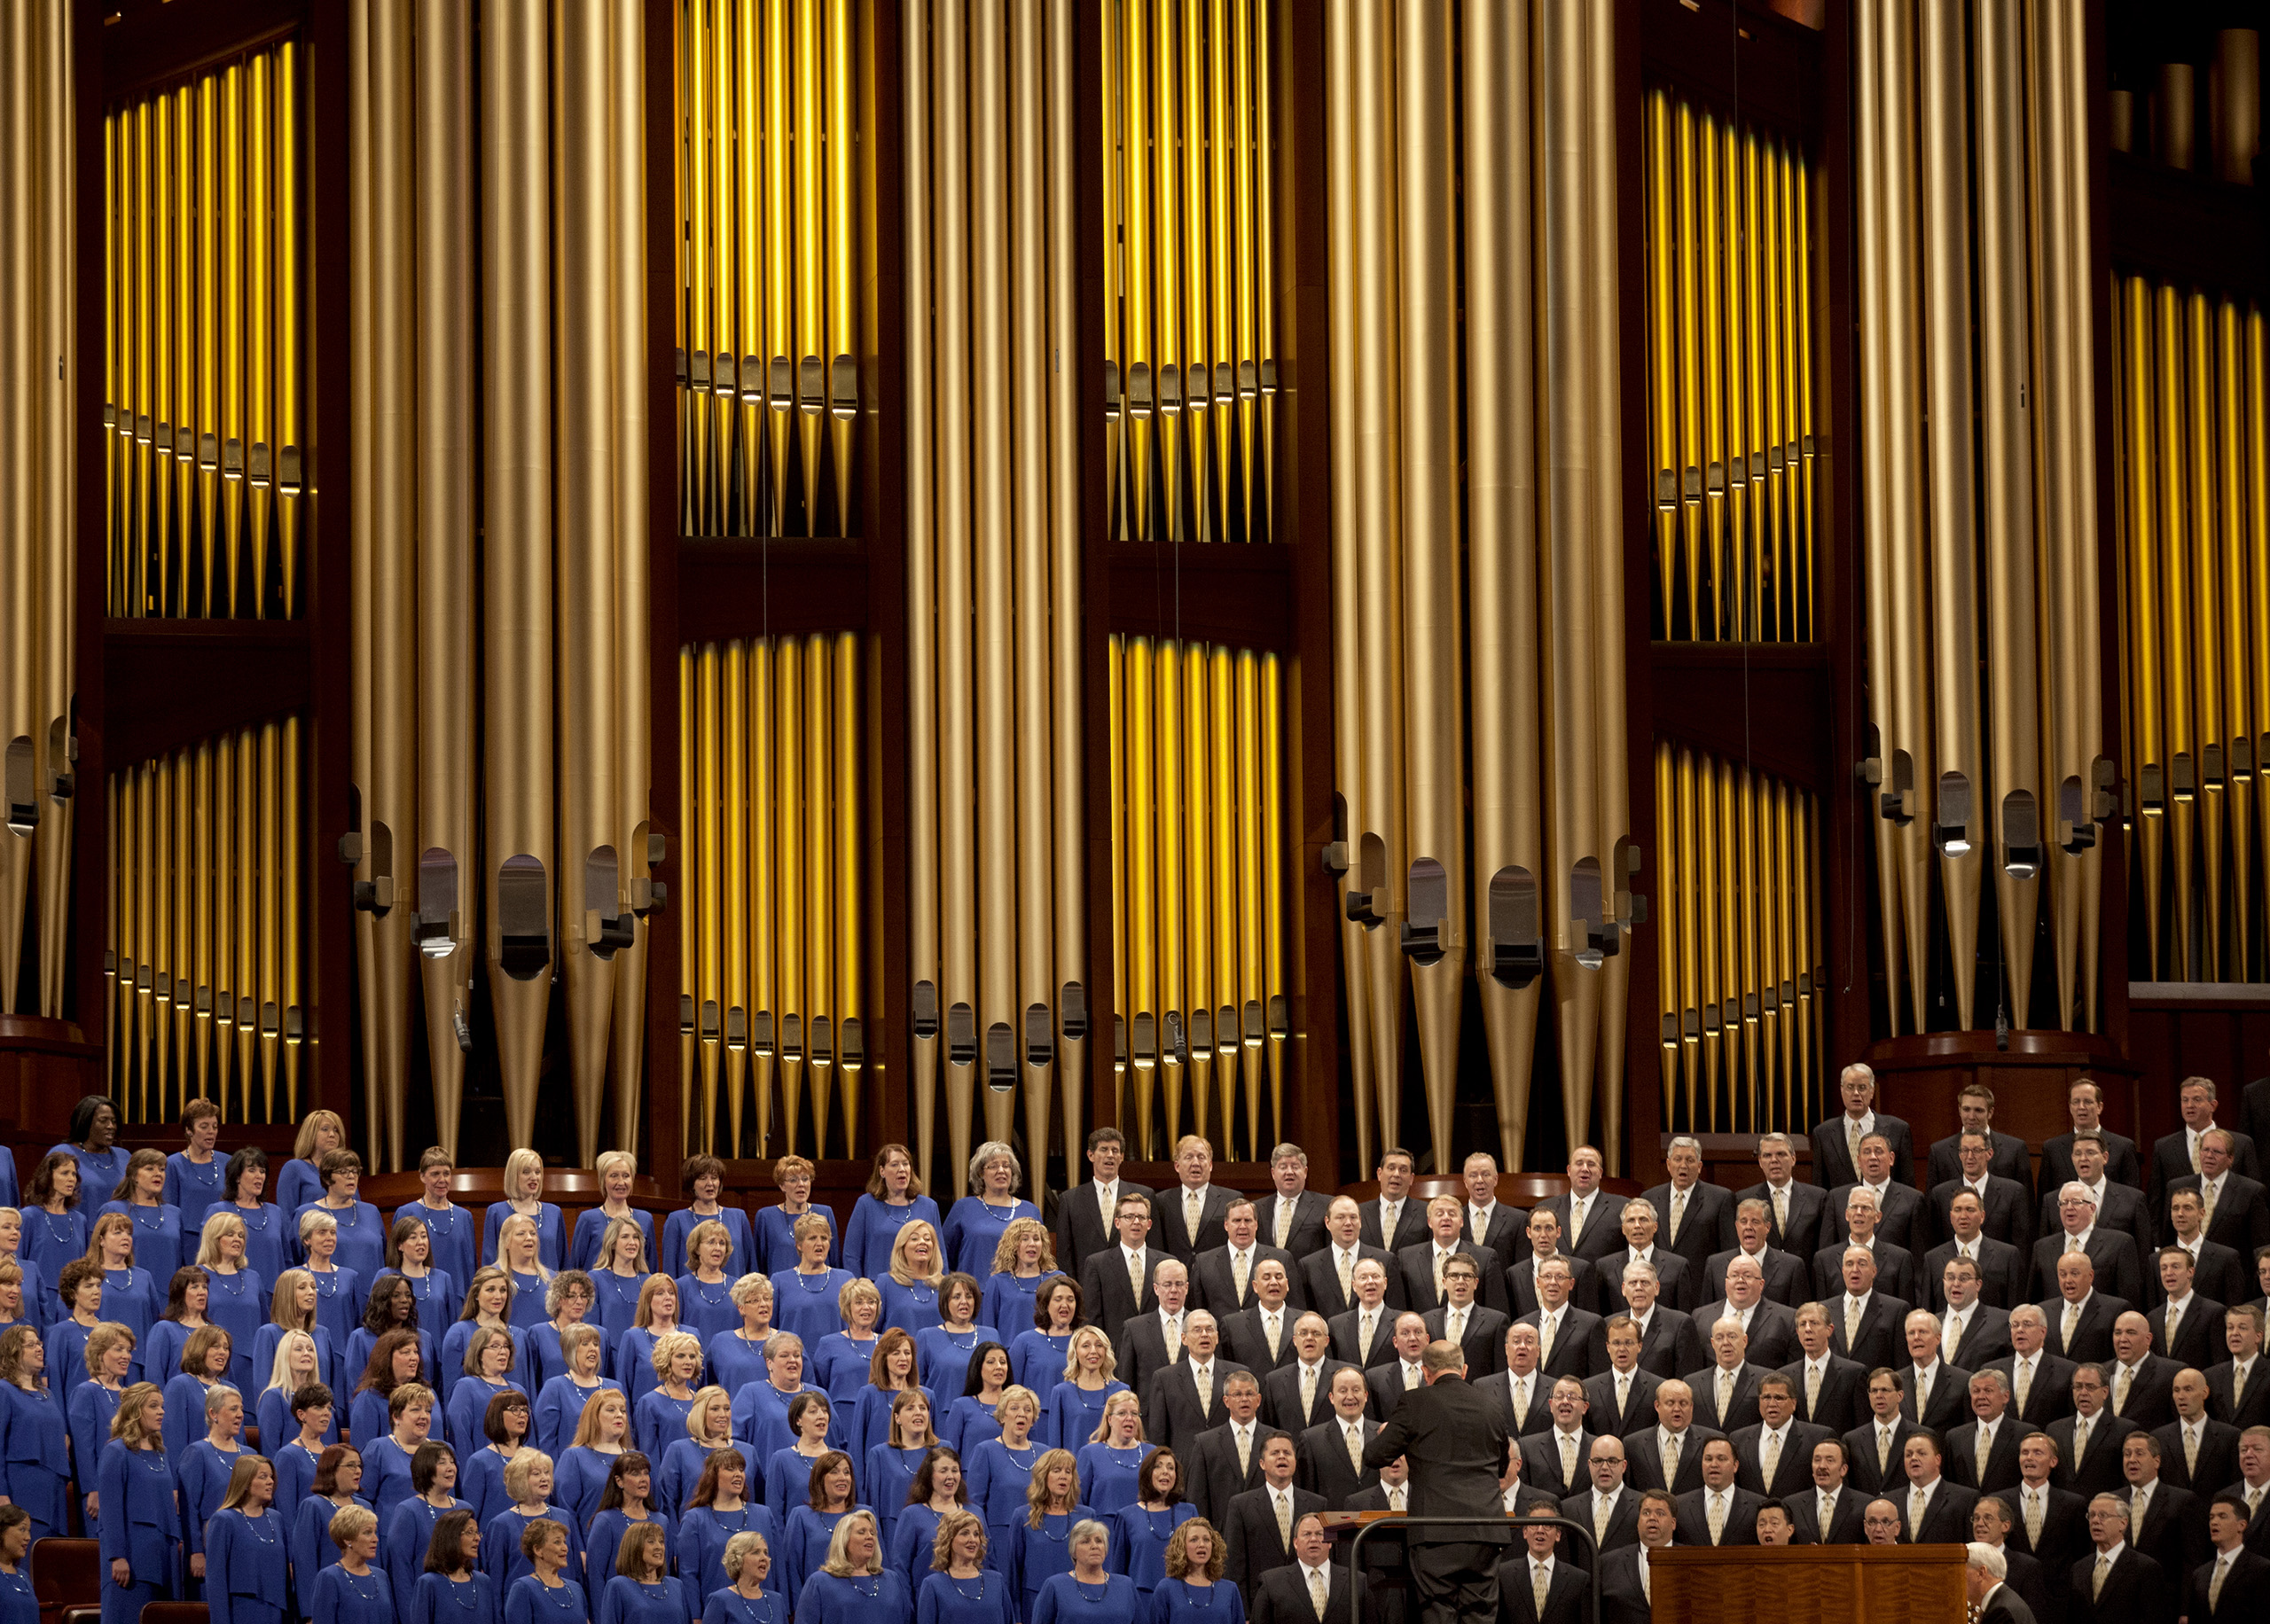 The Mormon Tabernacle Choir sings during the opening session of the two-day Mormon church conference on Saturday, Oct. 3, 2015, in Salt Lake City.